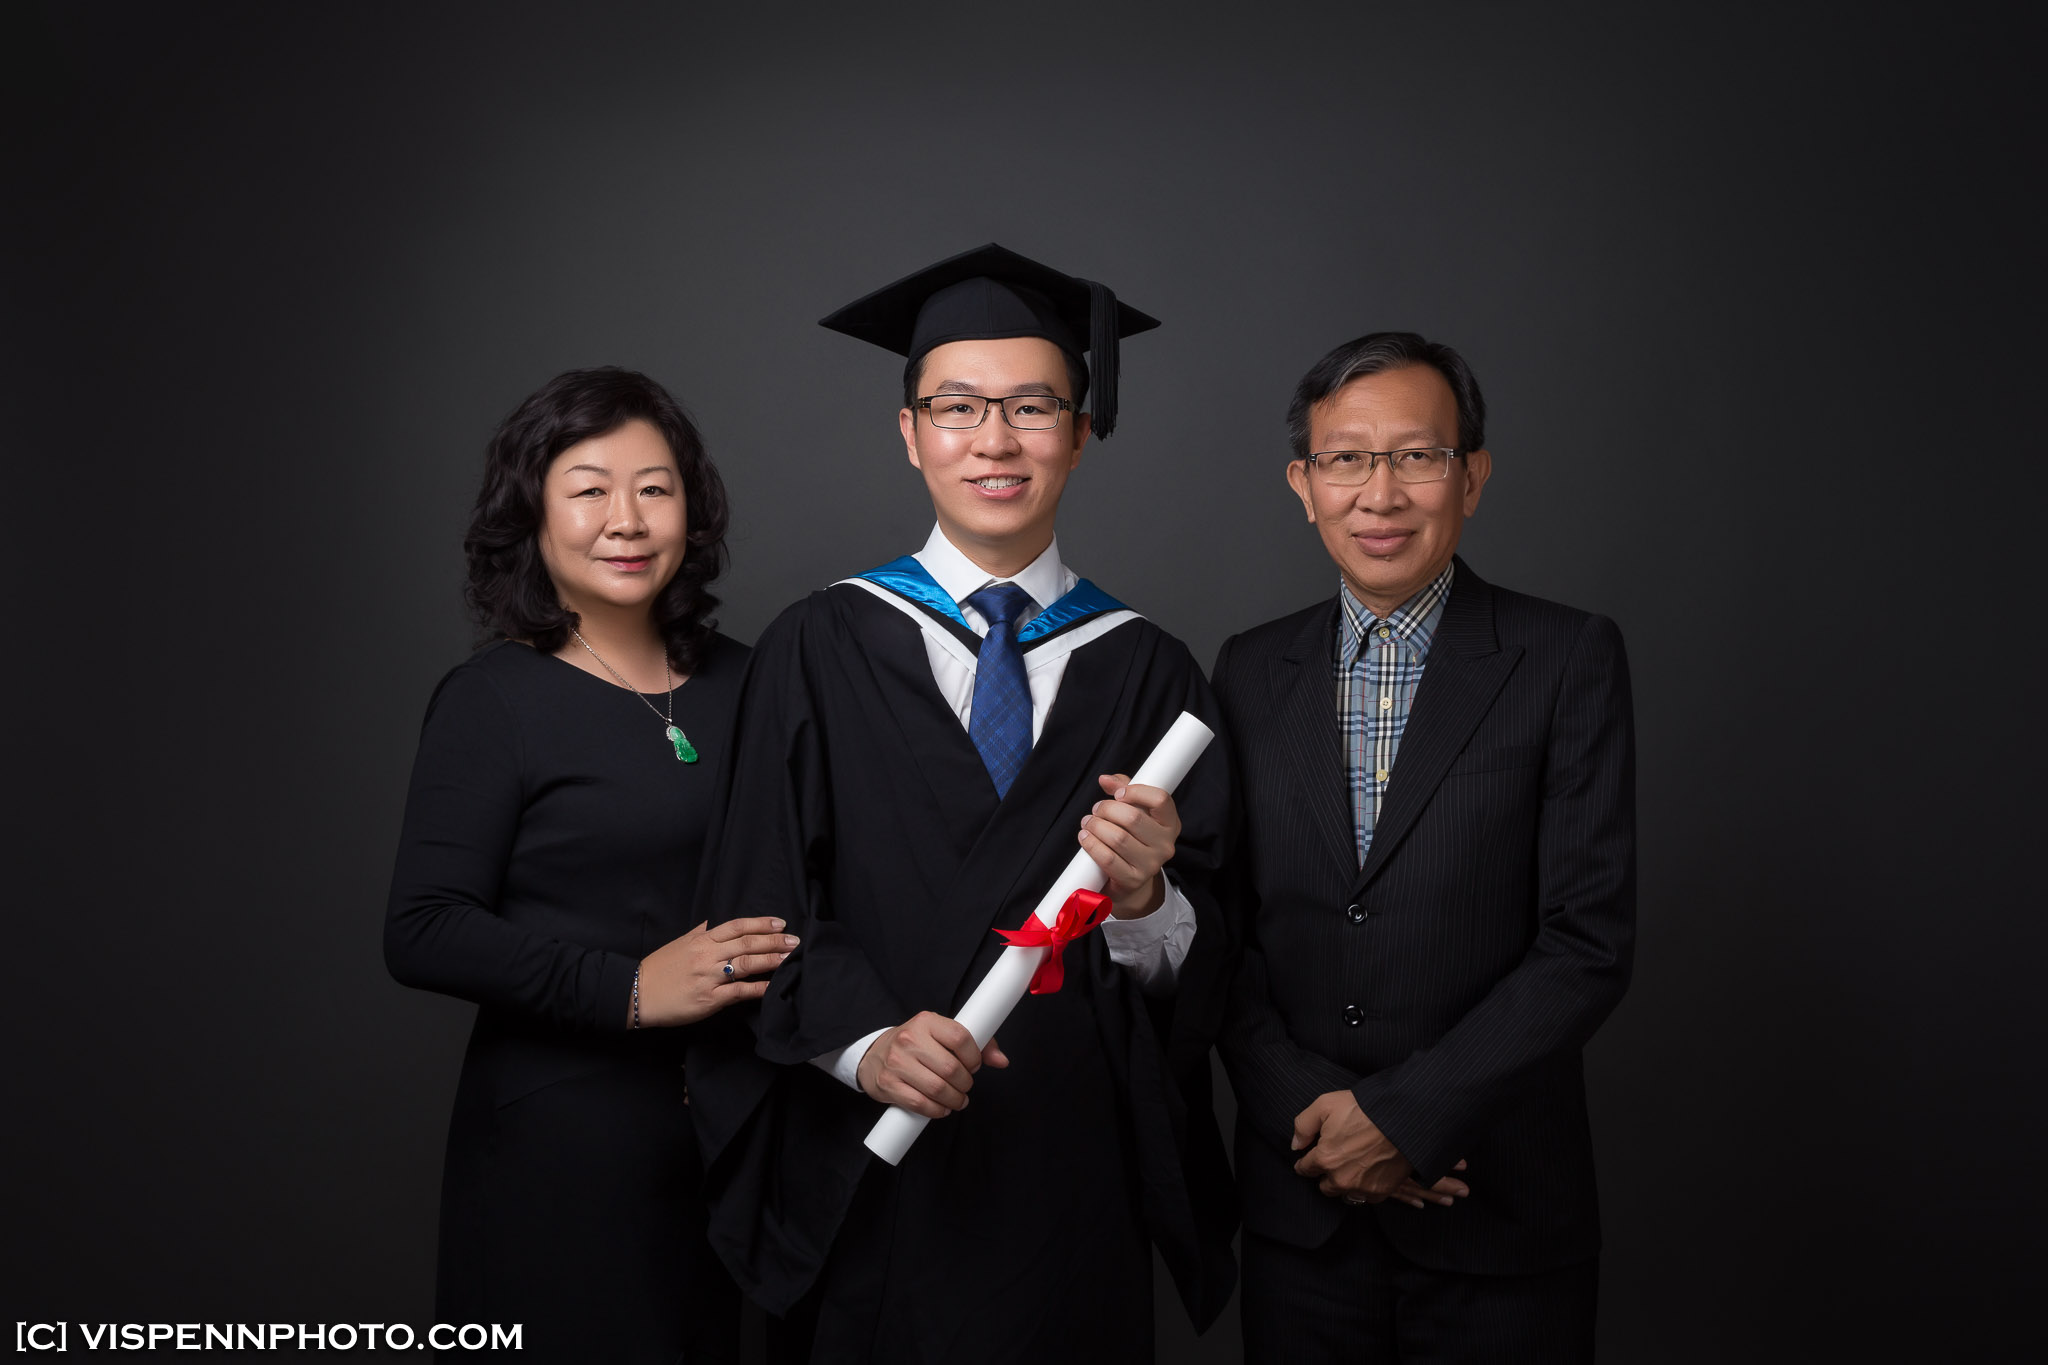 Headshot Melbourne Graduation Photoshoot VISPENN 墨尔本 毕业照 毕业摄影 1R9A8089